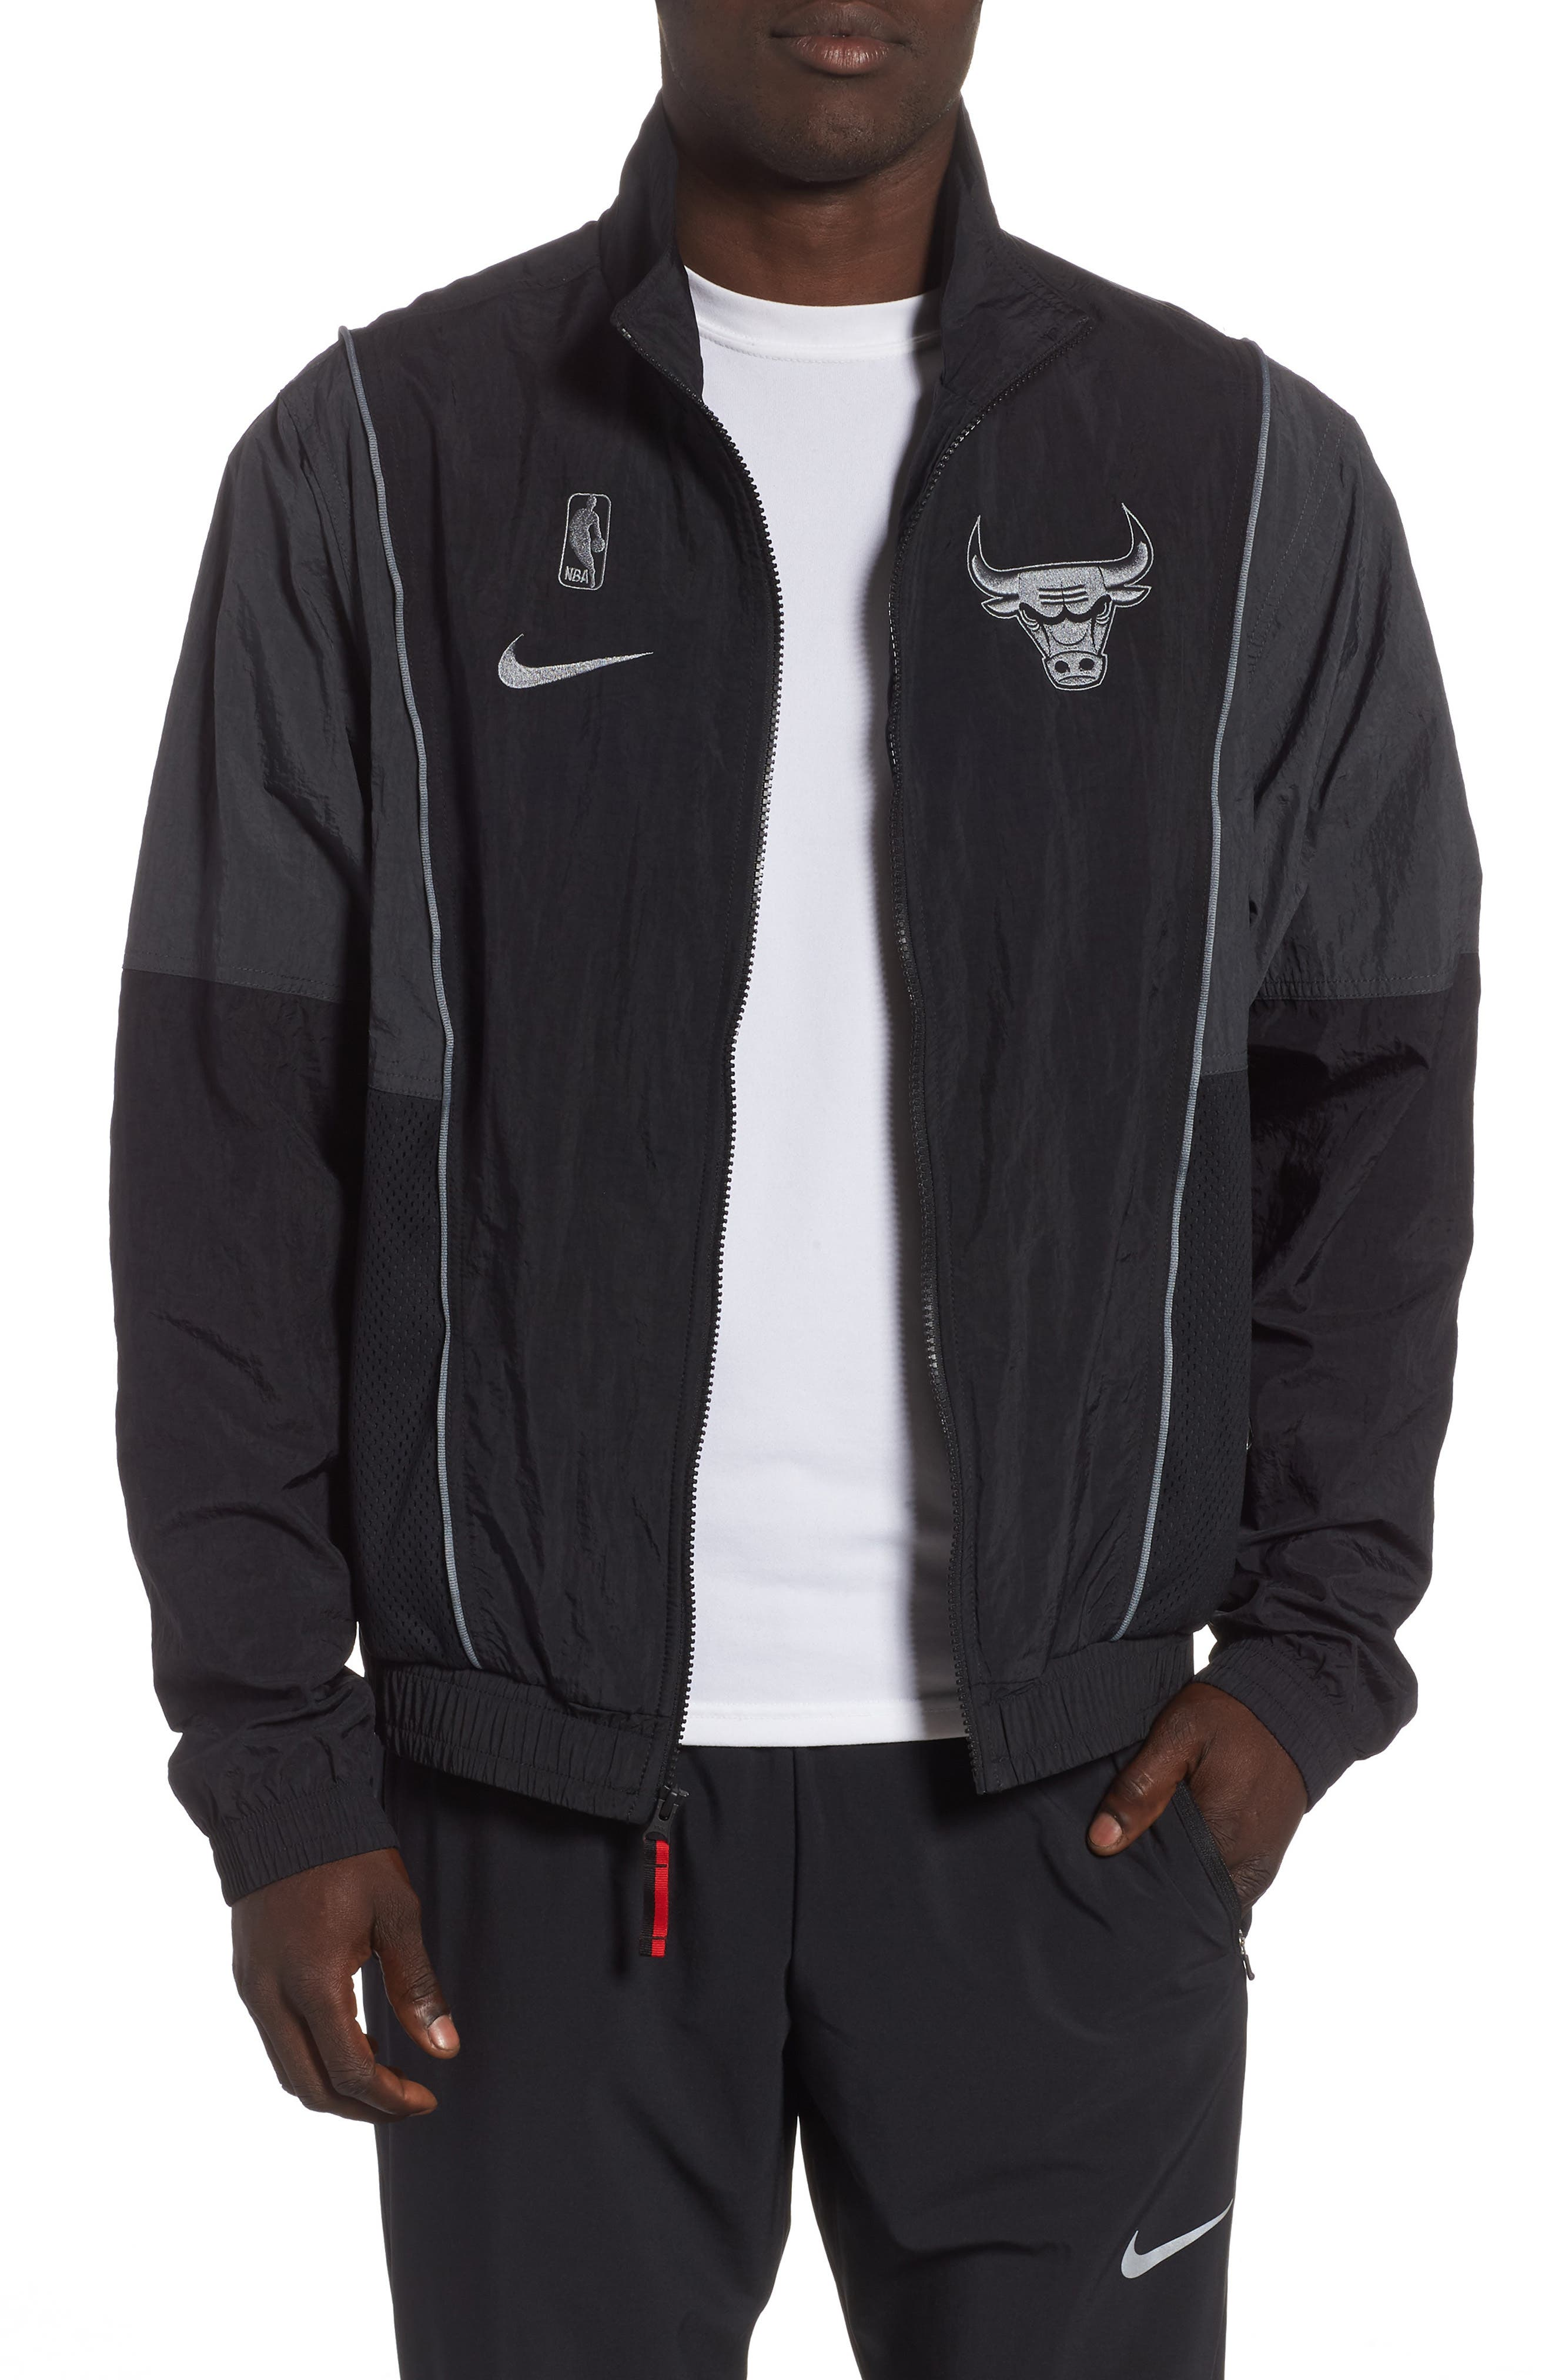 Chicago Bulls Track Jacket,                         Main,                         color, BLACK/ ANTHRACITE/ COOL GREY